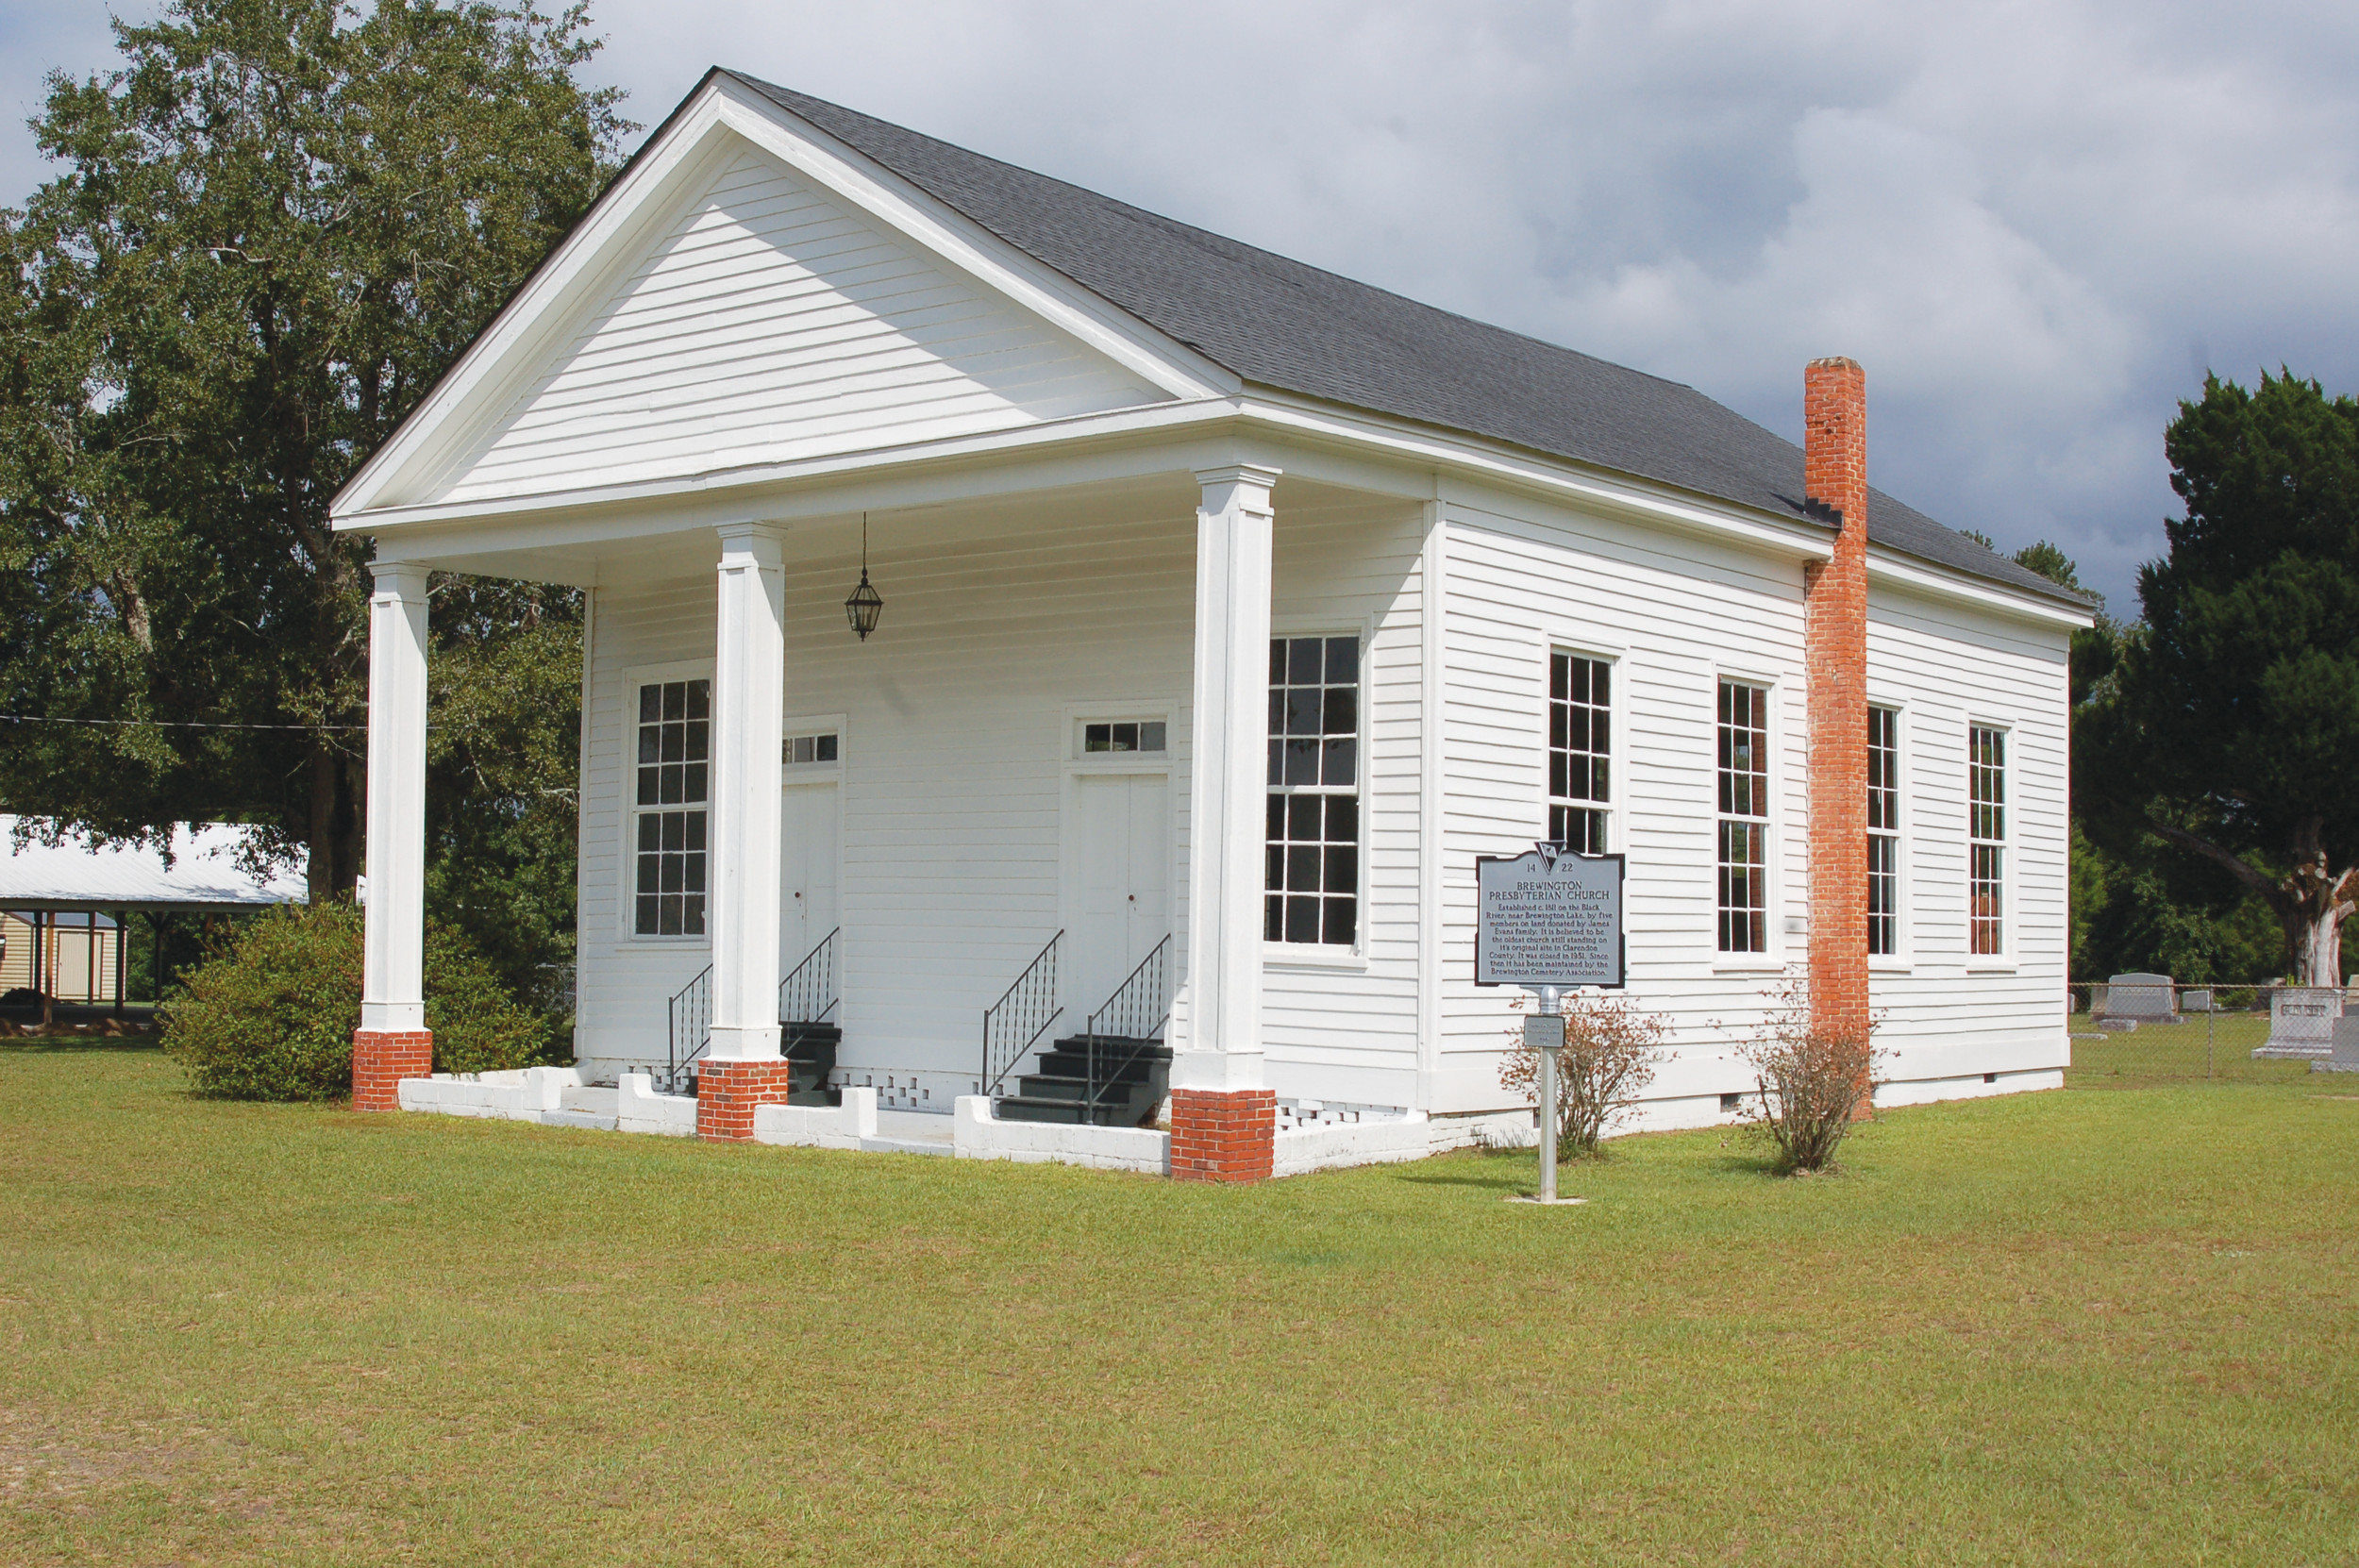 SUMTER ITEM FILE PHOTOBrewington Presbyterian Church has stood on its original site for 206 years.